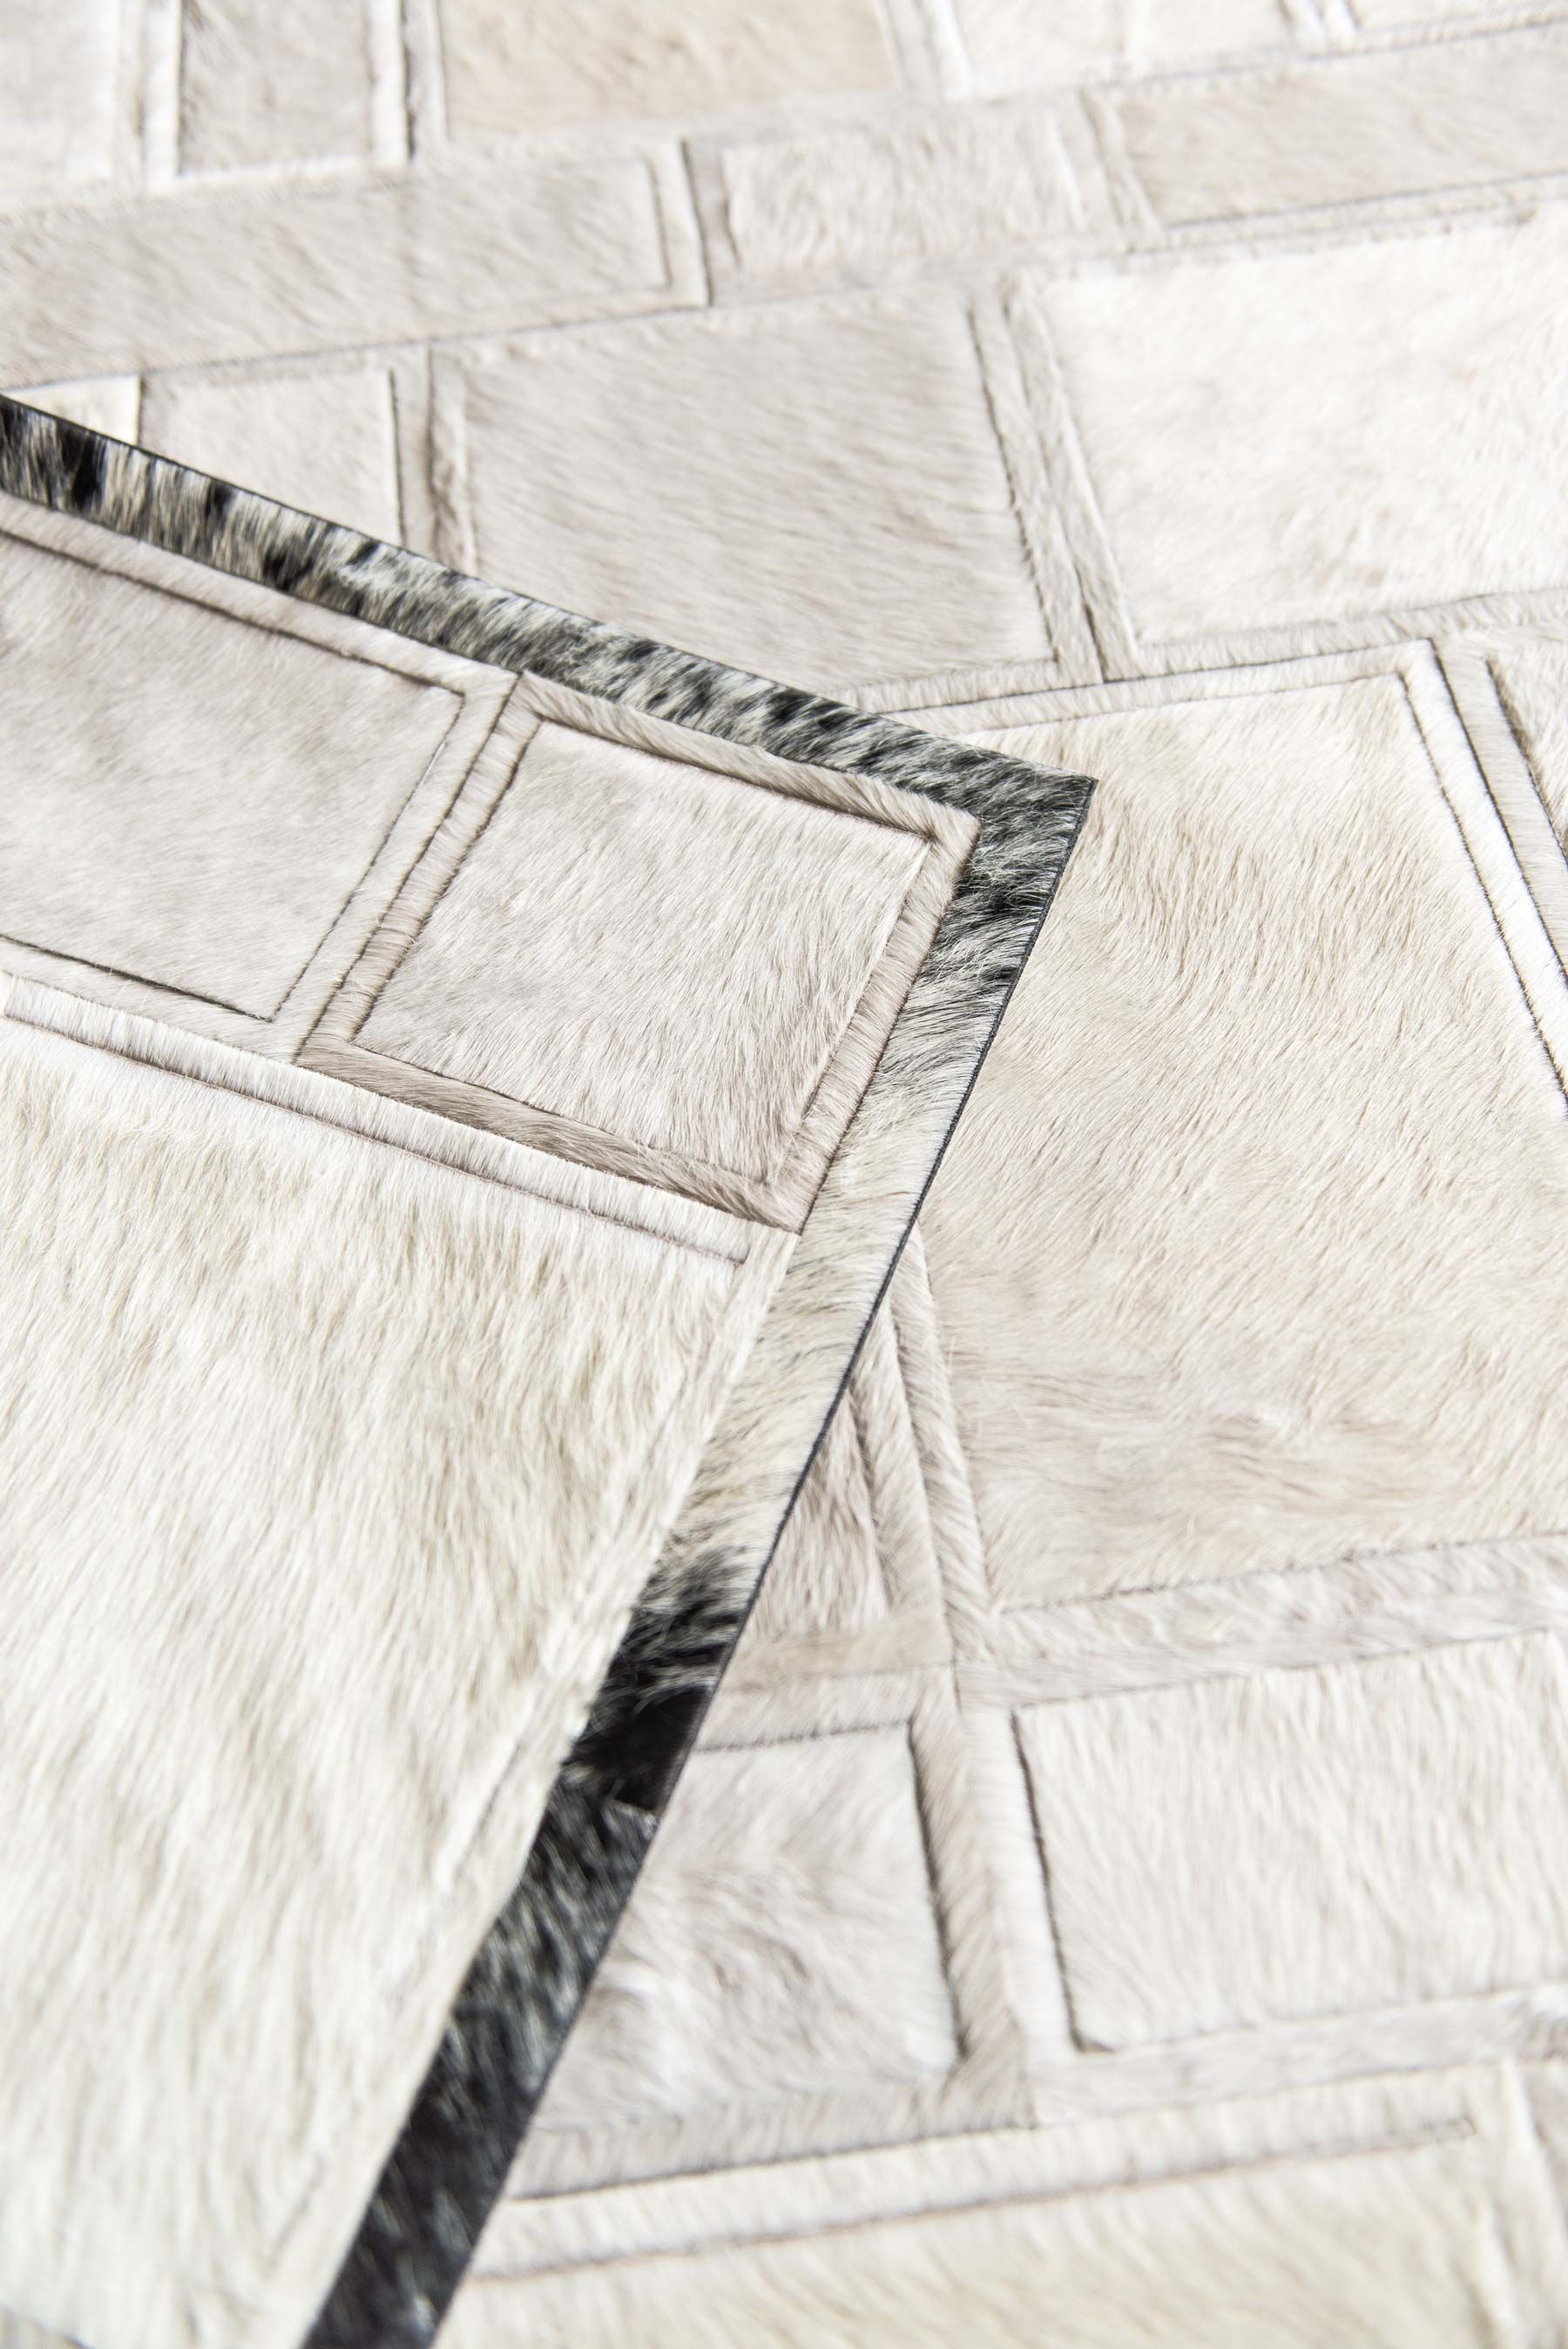 A Cream Confusion With A Black Speckle Border Rug Kyle Bunting